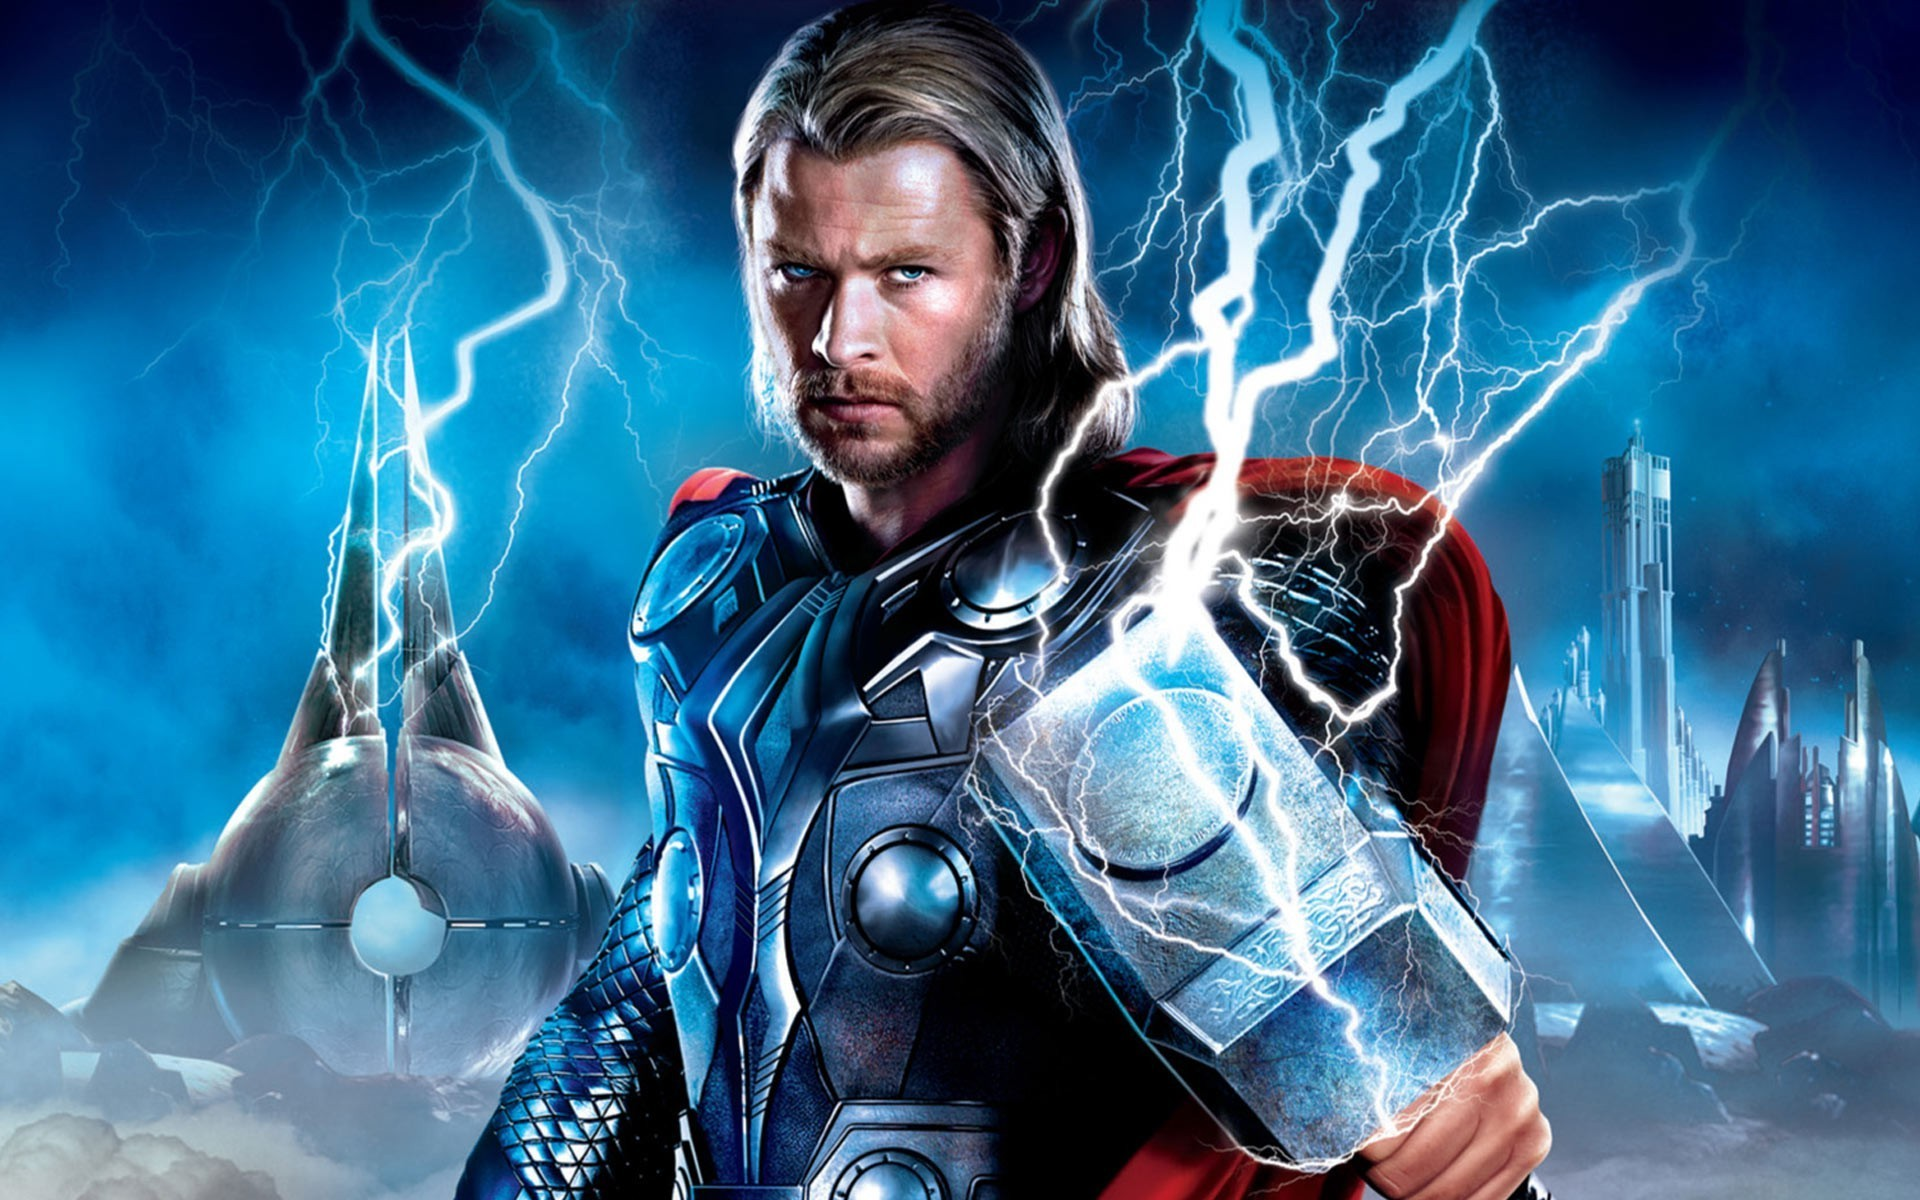 3d Thor Movie Hammer Wallpapers Hd: Thor Wallpaper